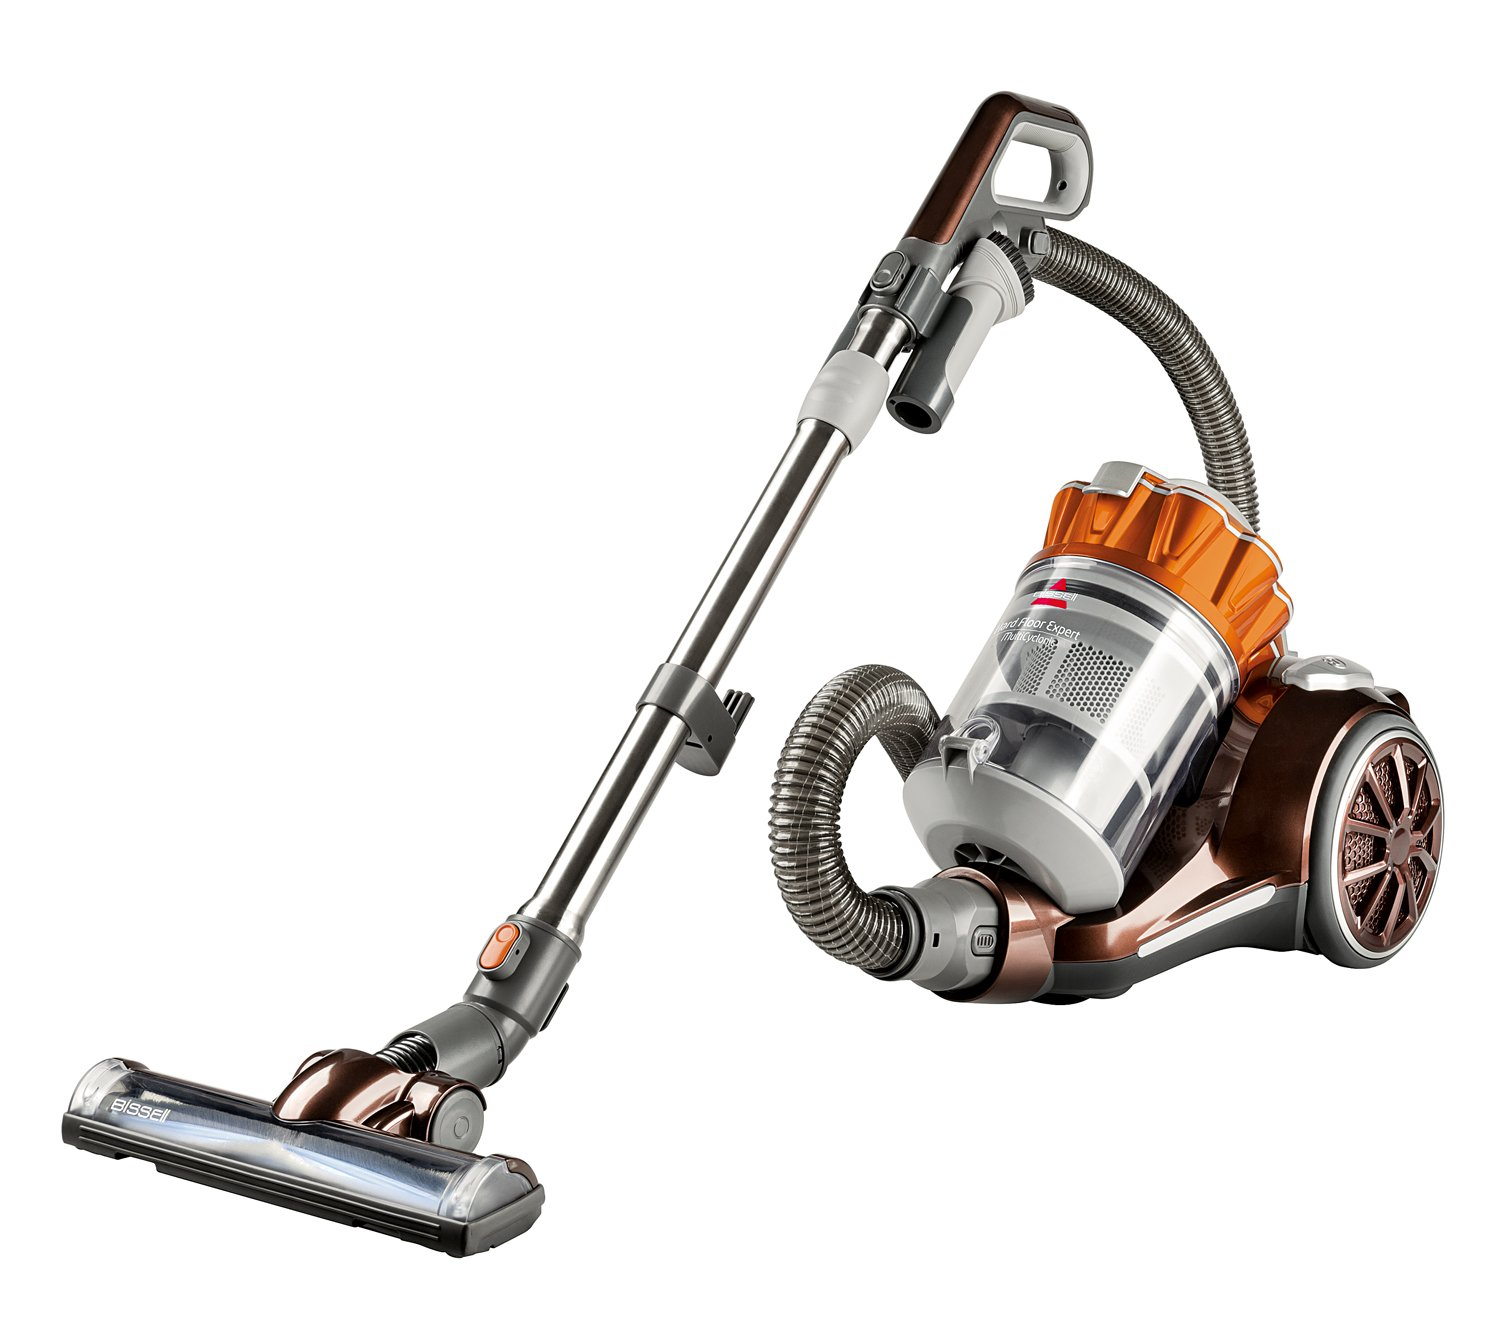 Bissell Hard Floor Expert Multi-Cyclonic Bagless Canister Vacuum, 1547 - Corded by Bissell